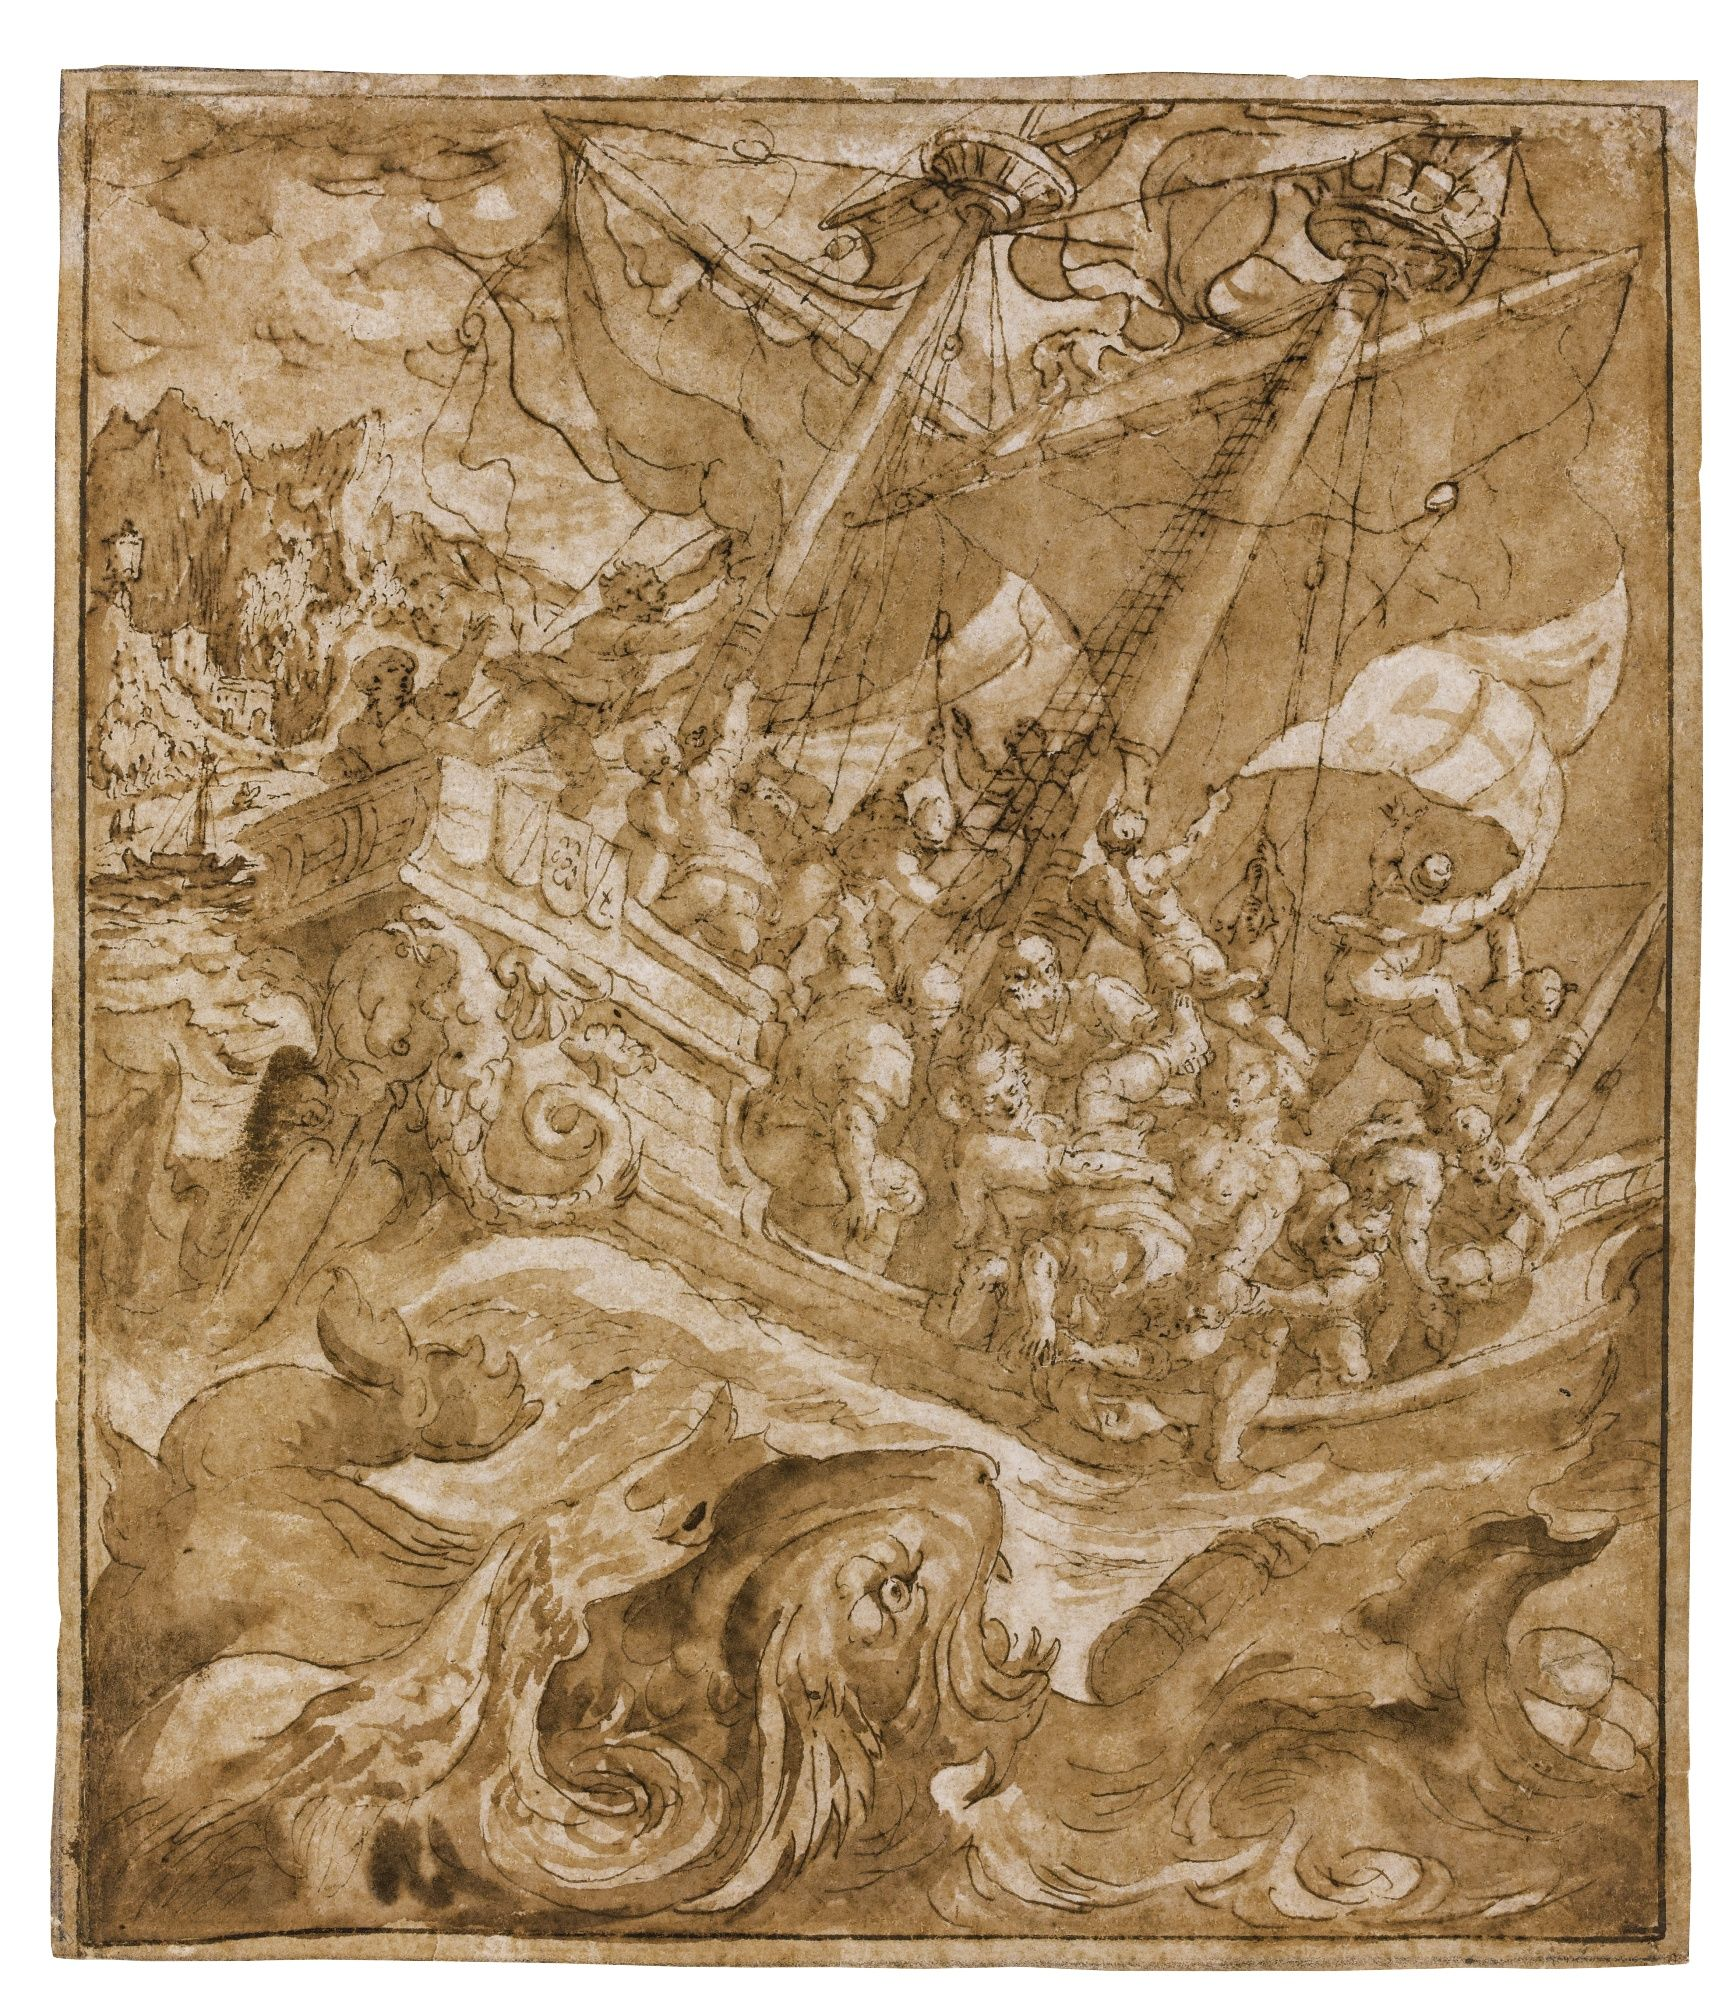 Maerten de Vos ANTWERP 1532 - 1603 JONAH CAST INTO THE SEA Pen and brown ink and wash, within partial brown ink framing lines, indented for transfer 216 by 183 mm